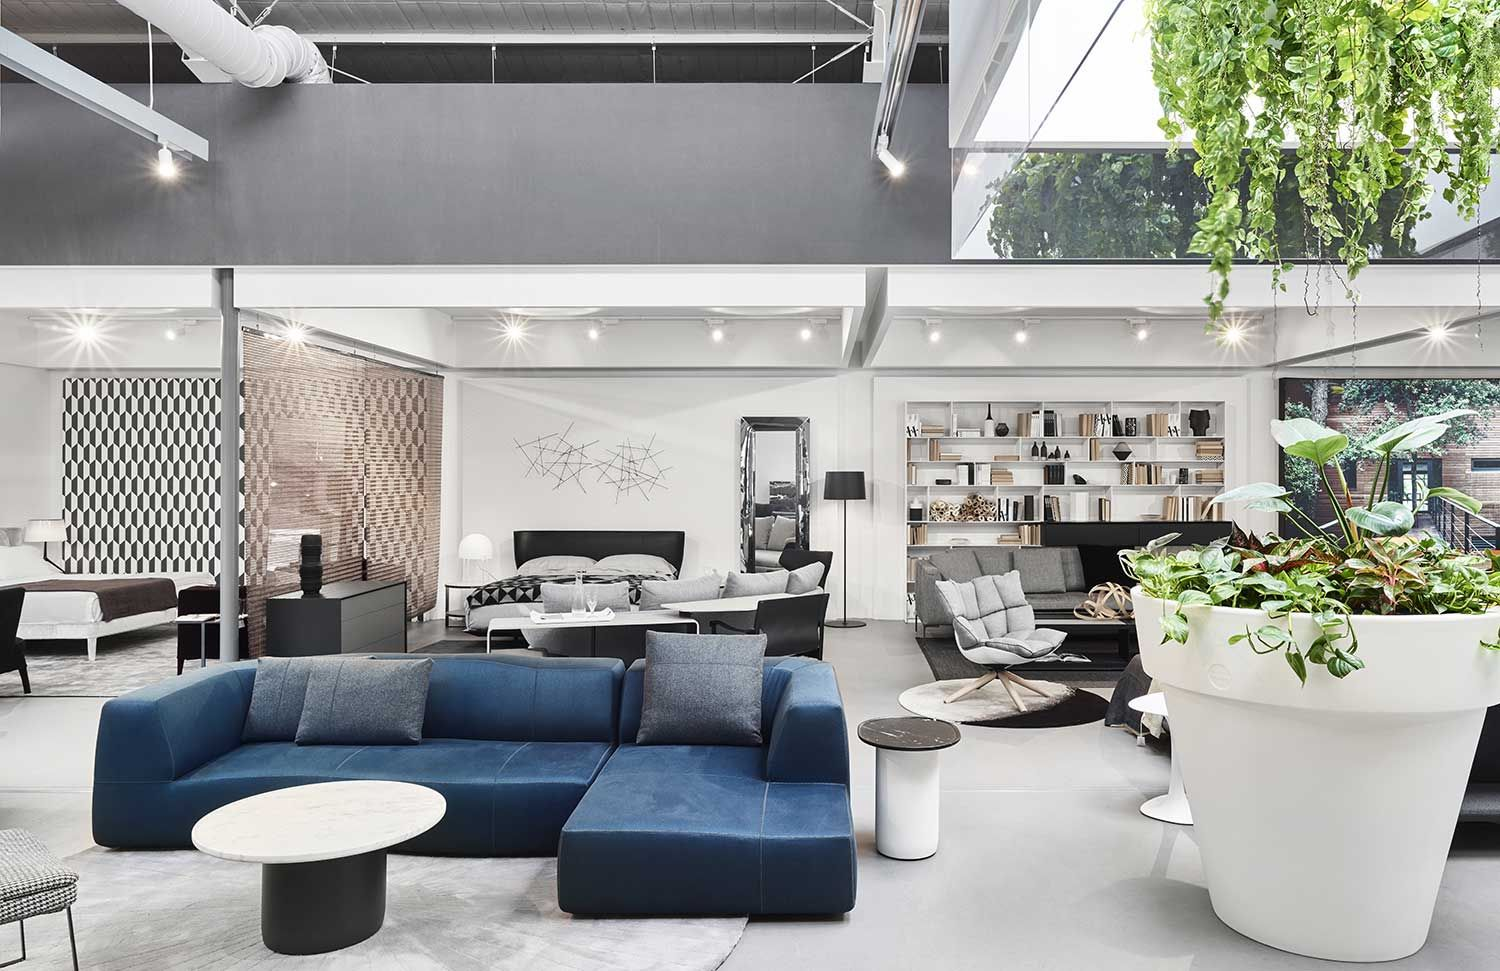 space furniture melbourne. Space Furniture Brisbane Has Moved To A New Architect-designed Showroom In Fortitude Valley Designed Melbourne D